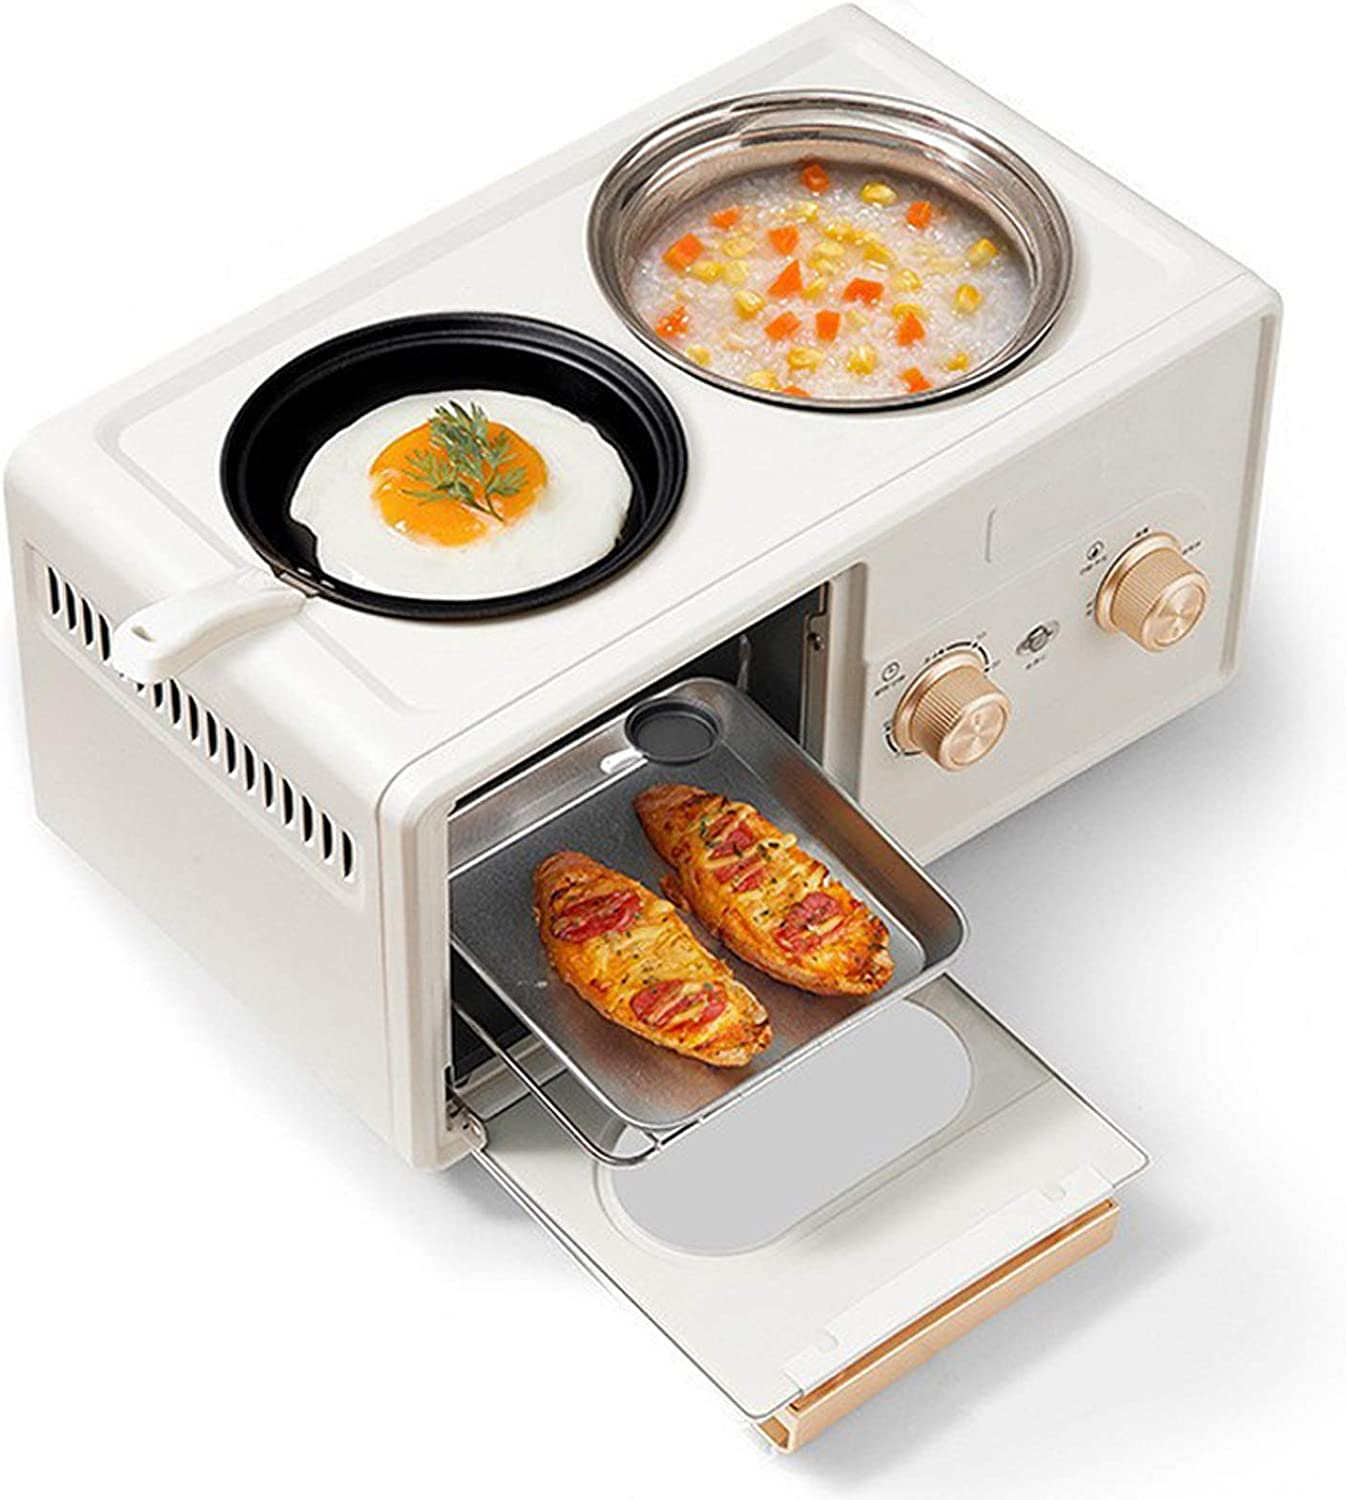 3-In-1 Breakfast Machine Oven,Household Multifunctional Cooking Machine Mini Toaster Oven,60-Minute Timer,1350W,Overheating Protection,Beige tiny ovensv XIEJING (Color : Beige)